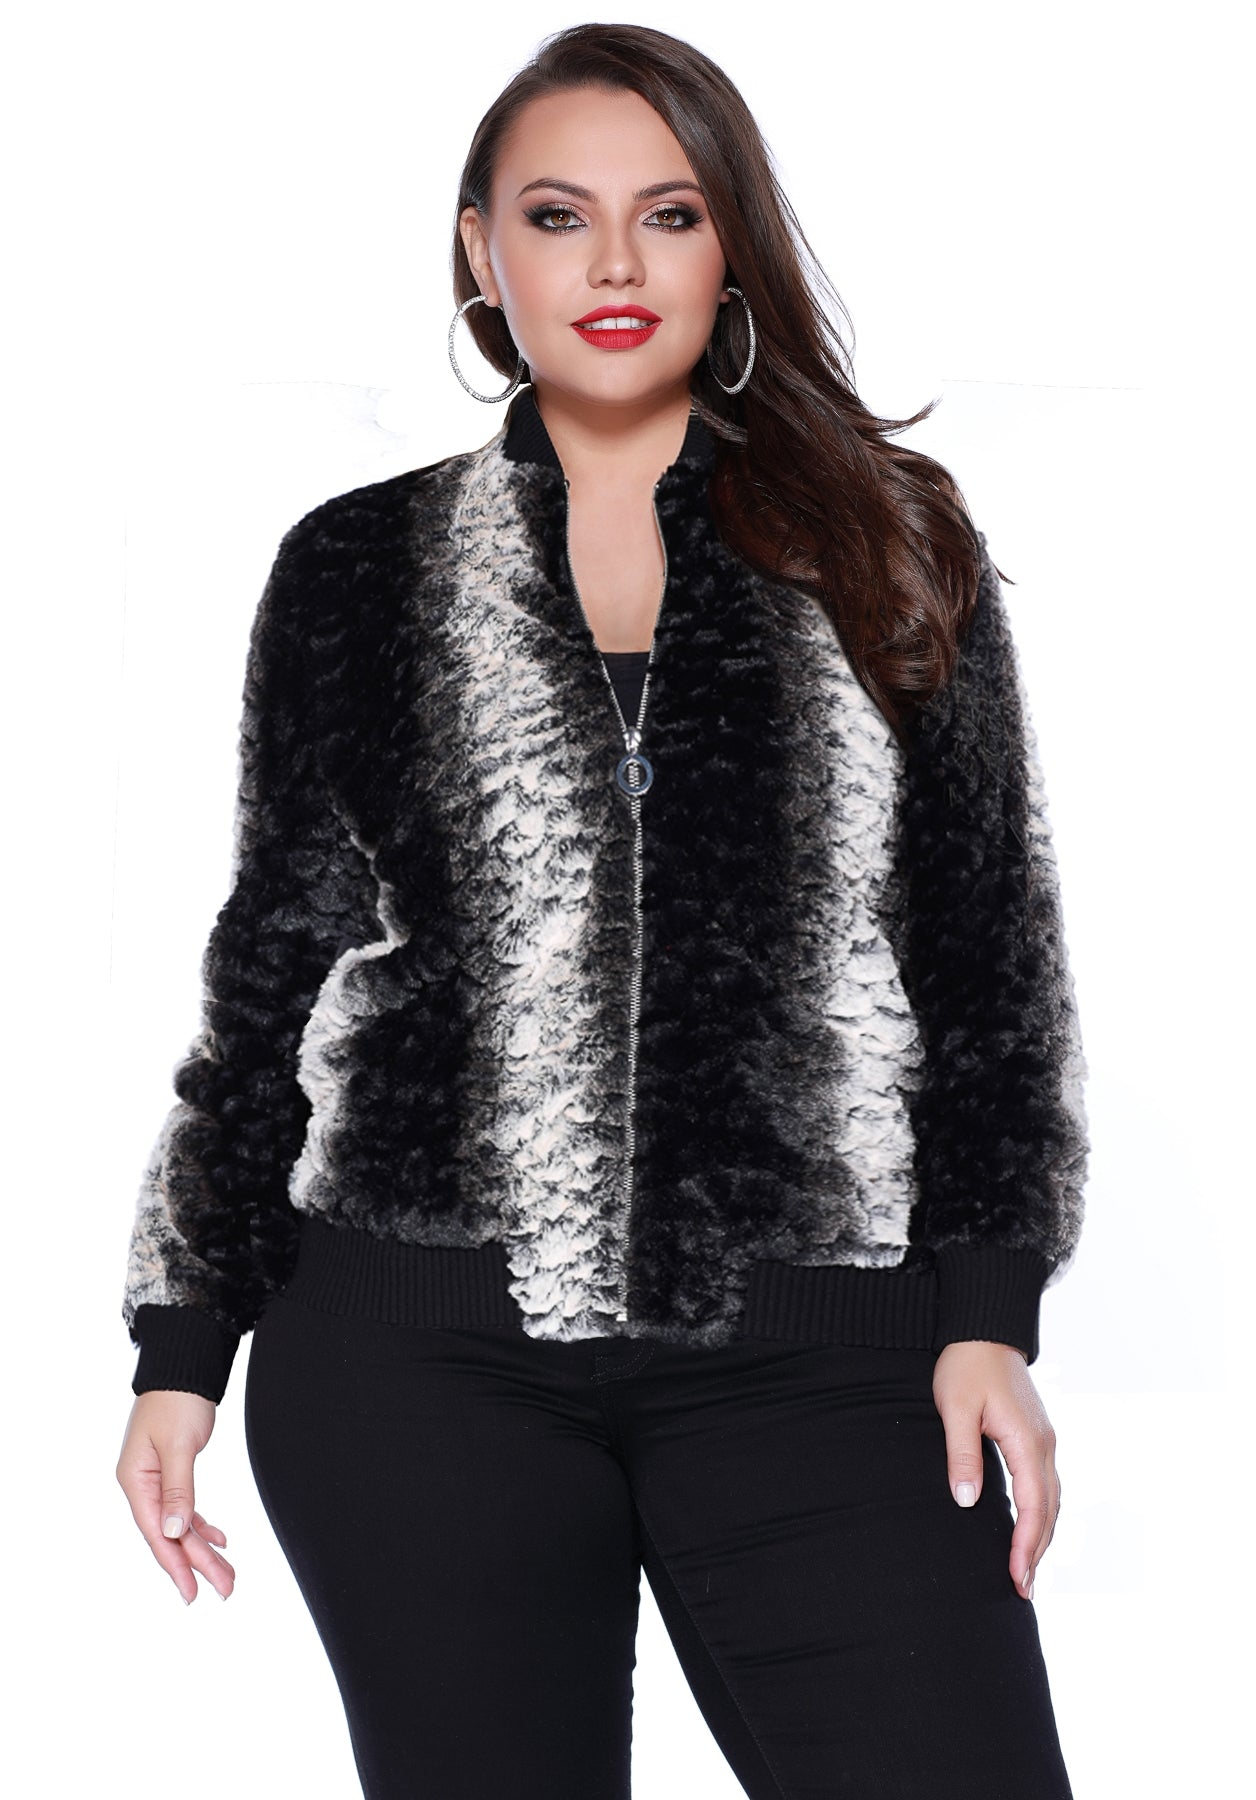 034eb95b7df Share Share on Facebook Tweet Tweet on Twitter Pin it Pin on Pinterest. Faux  Fur Bomber Jacket with Pockets BLACK